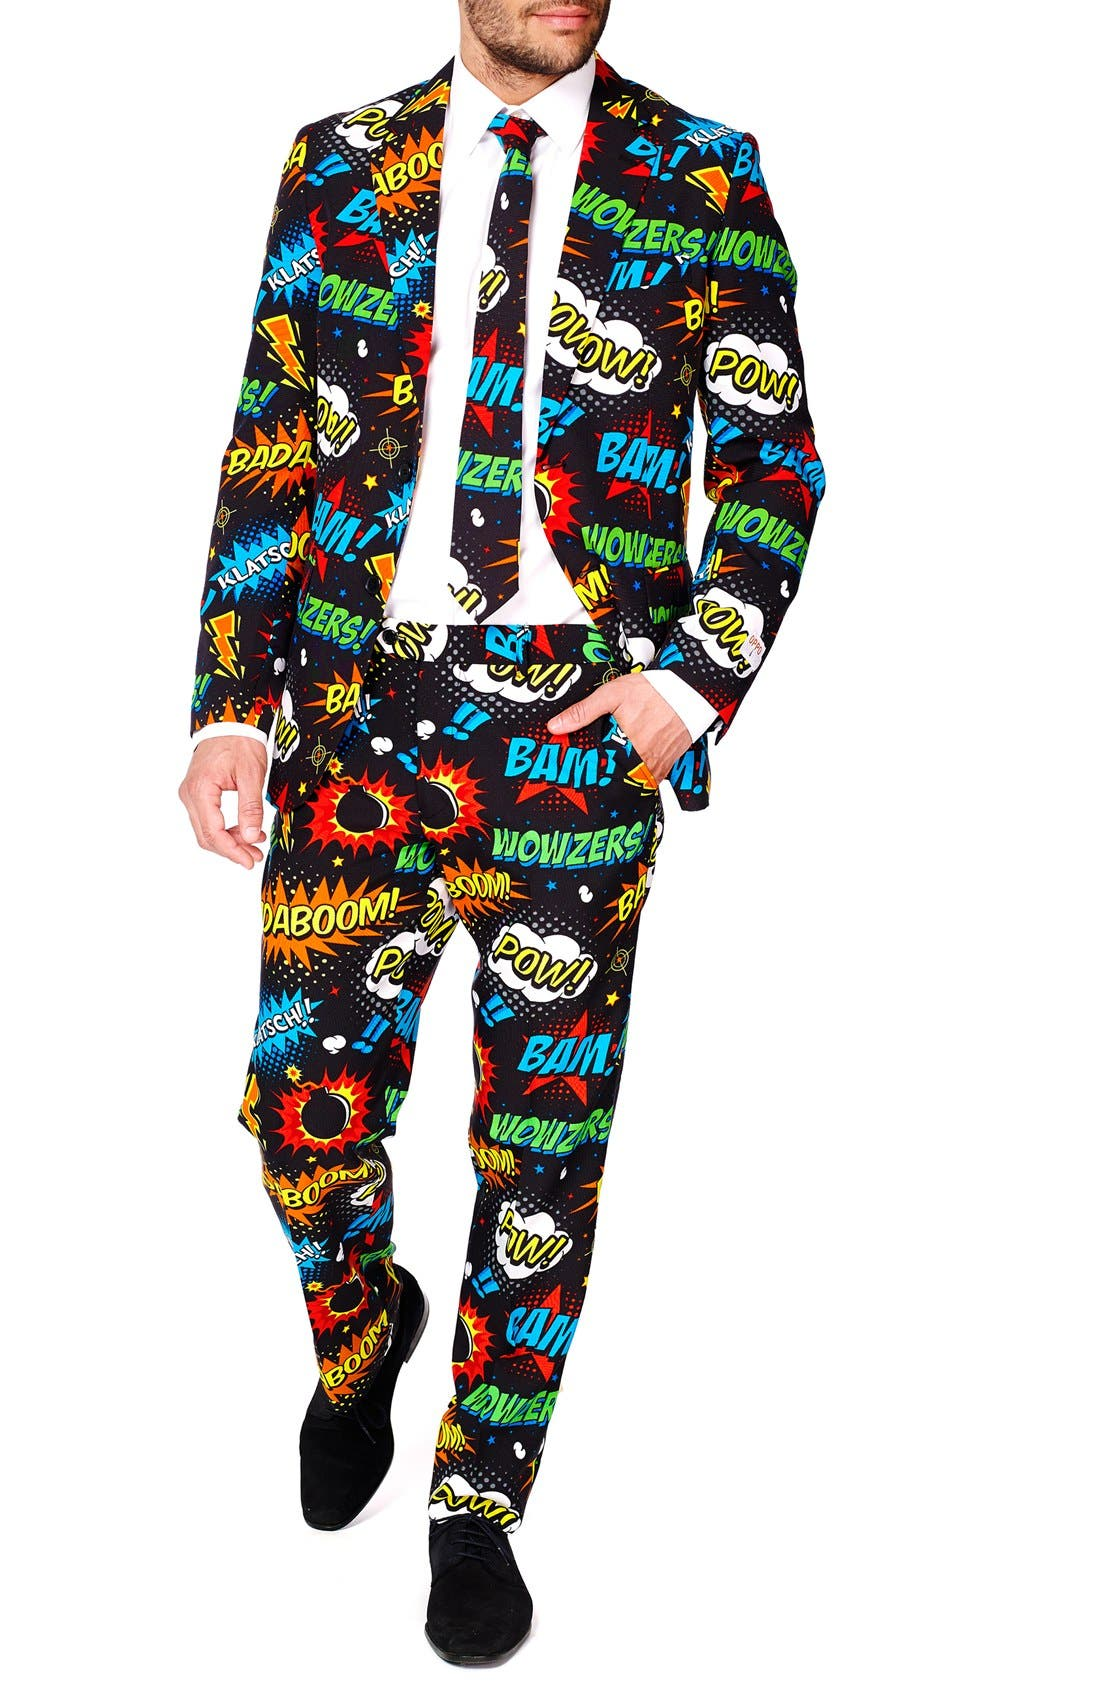 'Badaboom' Trim Fit Two-Piece Suit with Tie,                         Main,                         color, 001